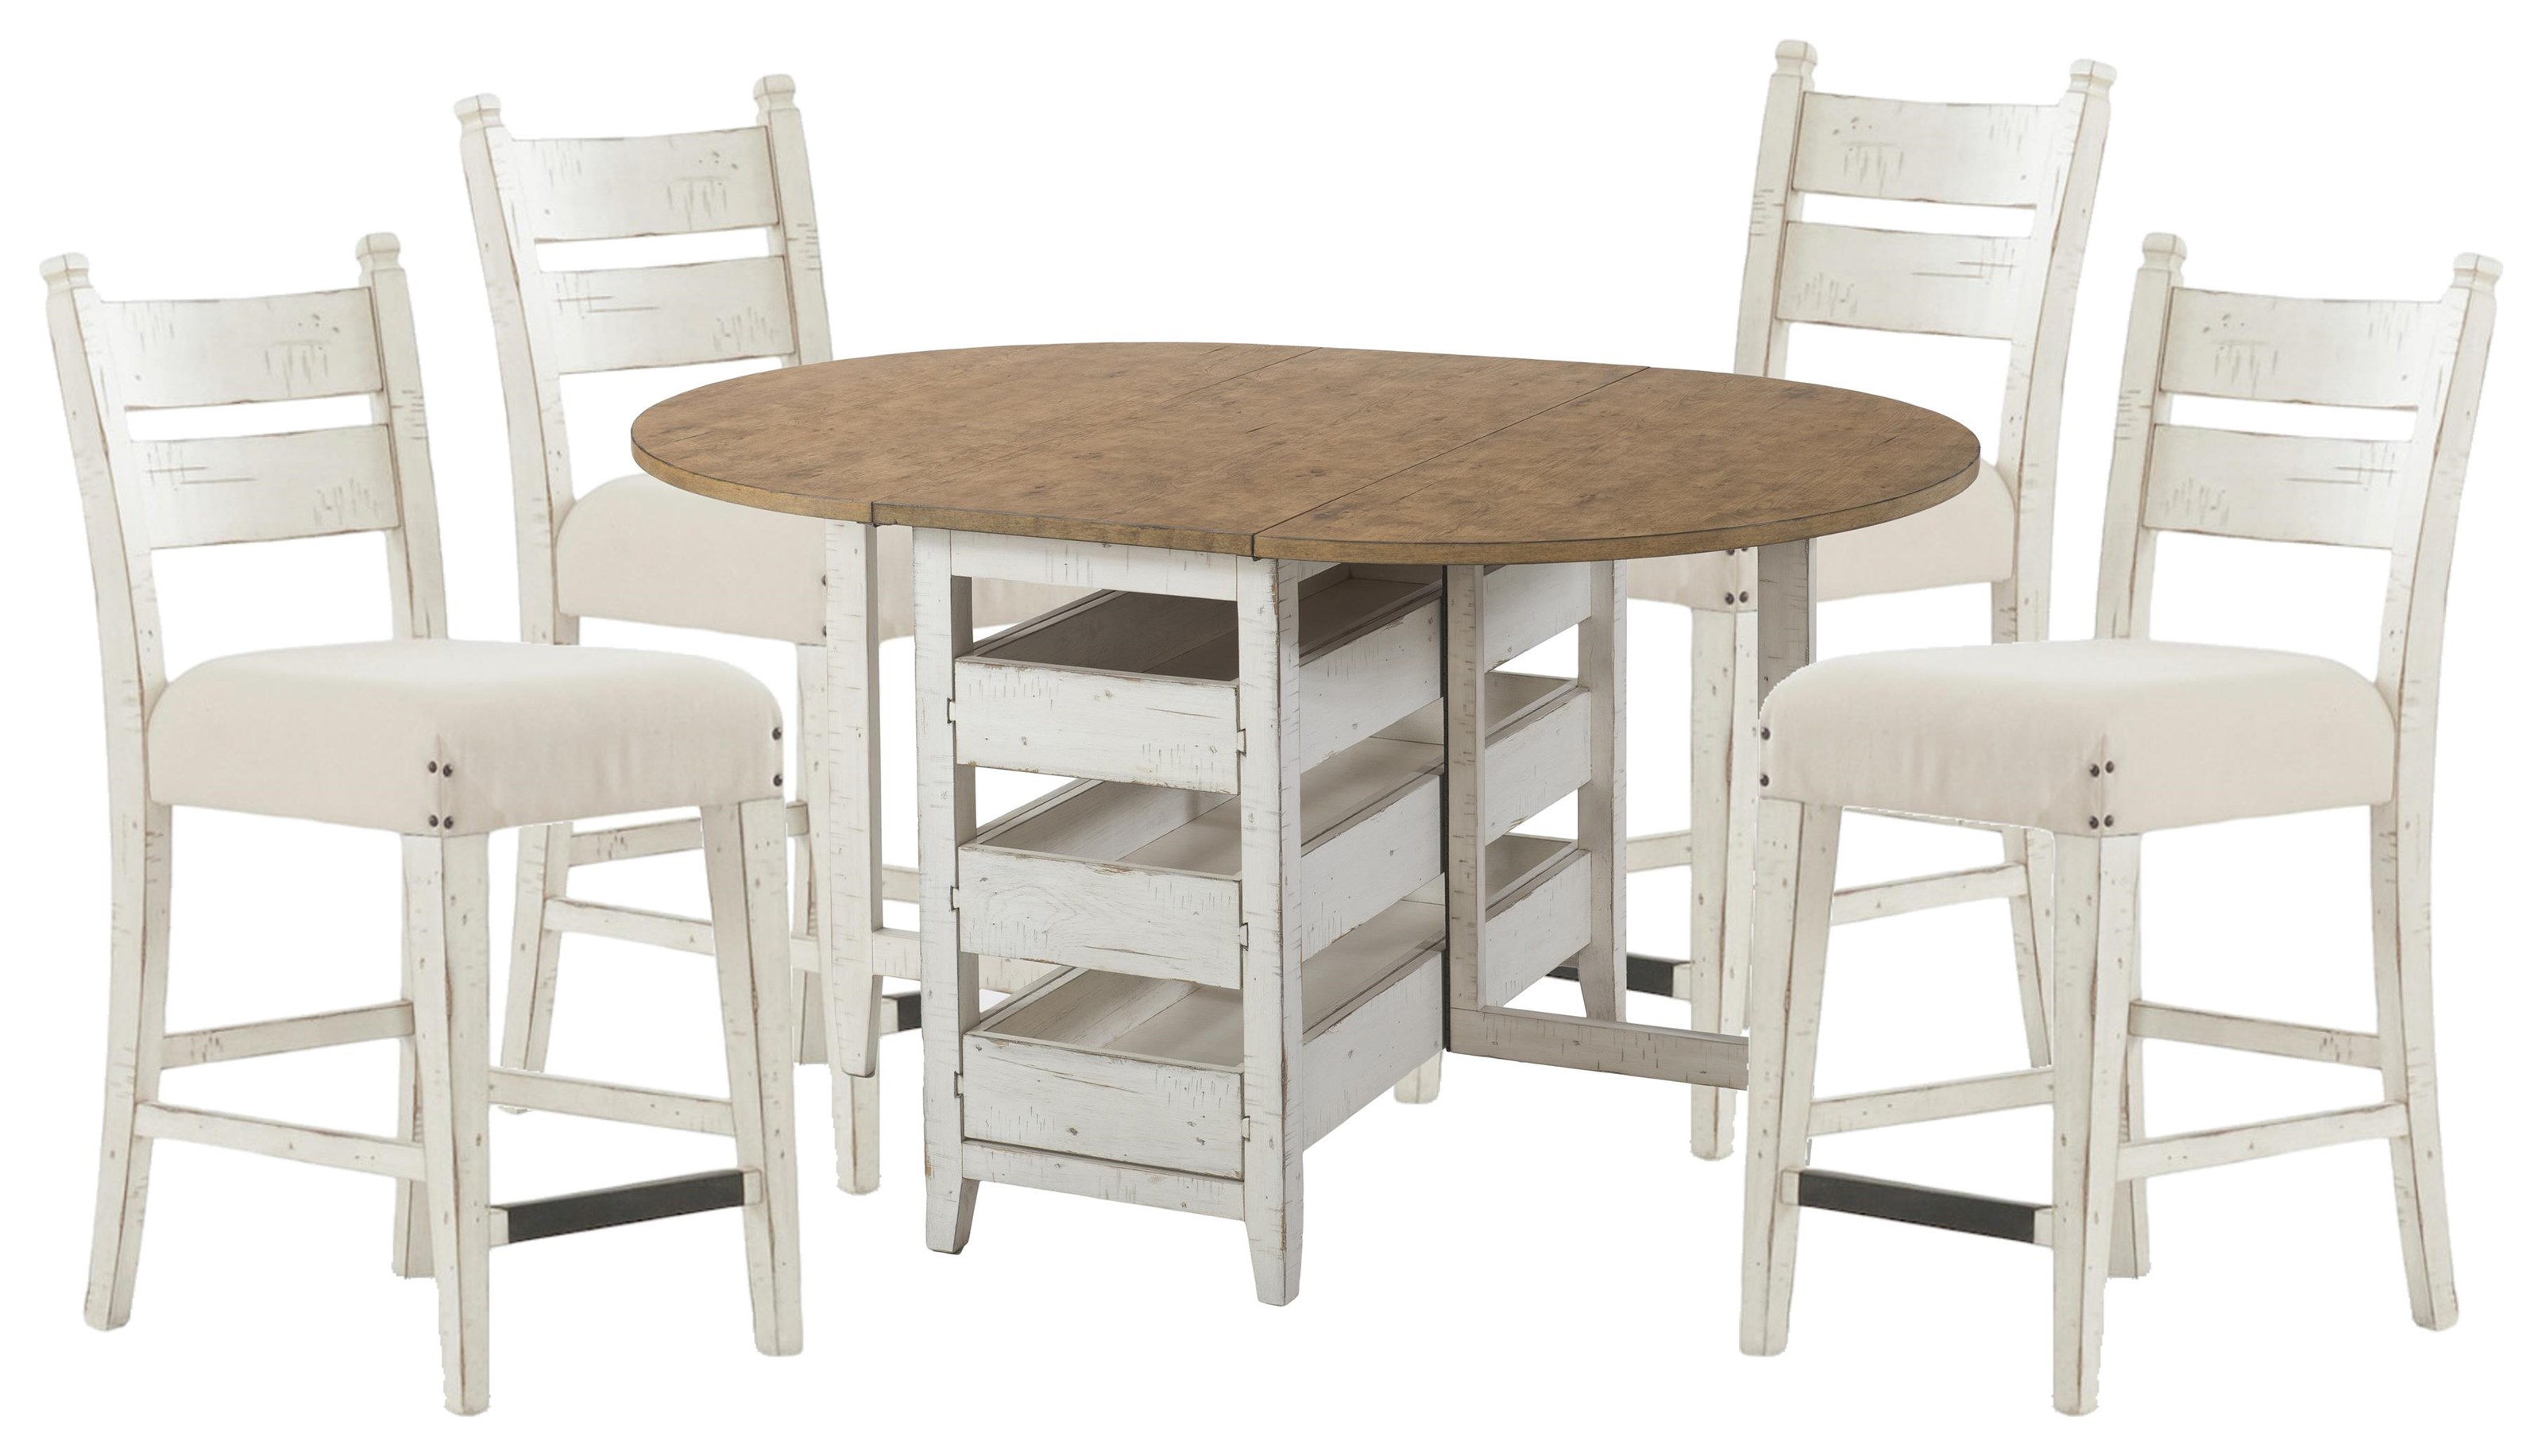 Coming Home Table and Concord Side Chairs by Trisha Yearwood Home Collection by Klaussner at Johnny Janosik